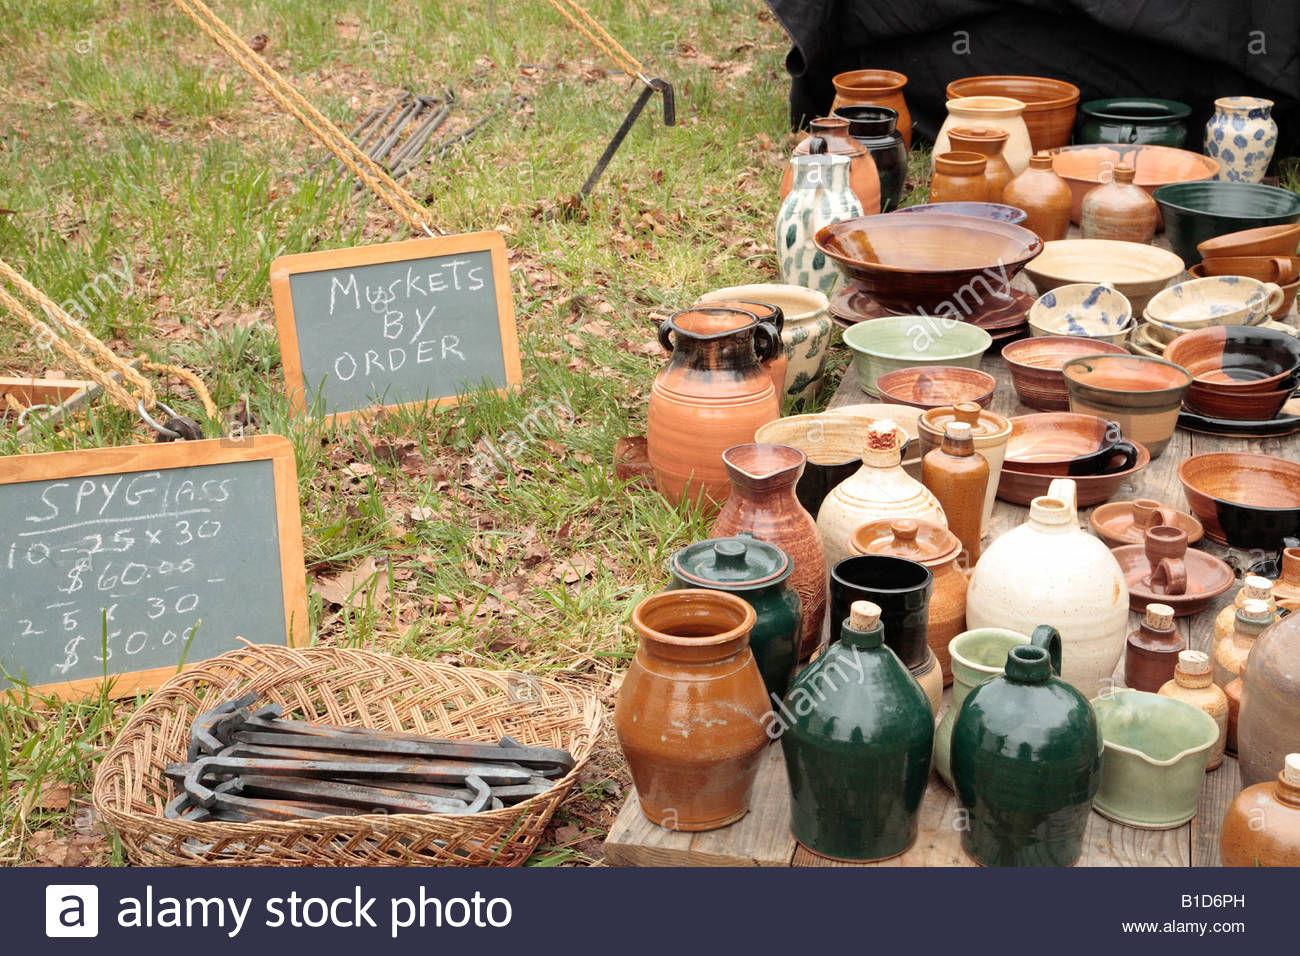 Ceramic and other wares at a sutler's booth at the Market Fair at an